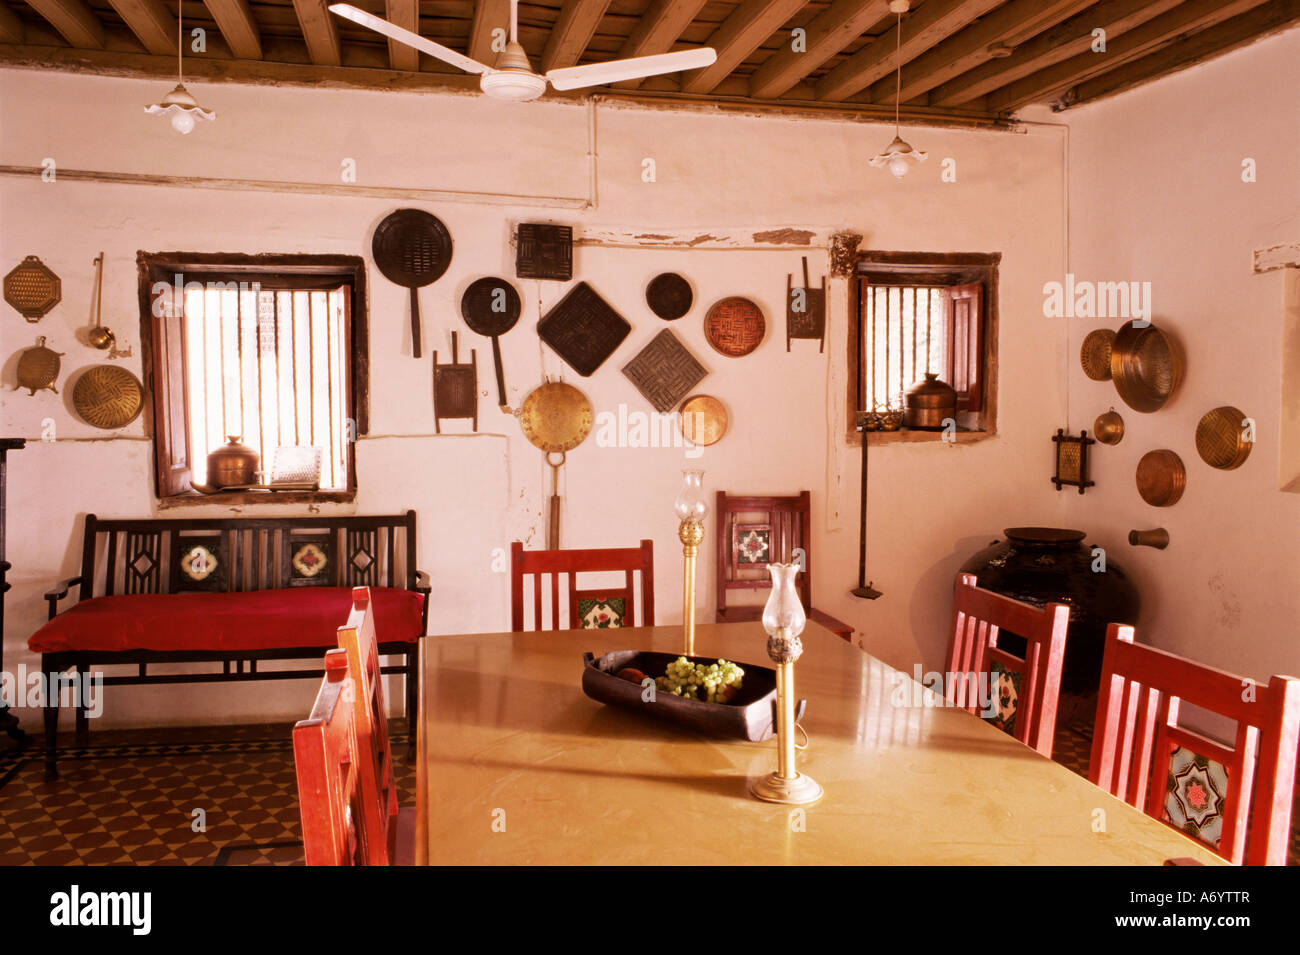 Wood beamed ceiling and kitchen utensils on wall in dining area in restored traditional Pol house Ahmedabad Gujarat - Stock Image